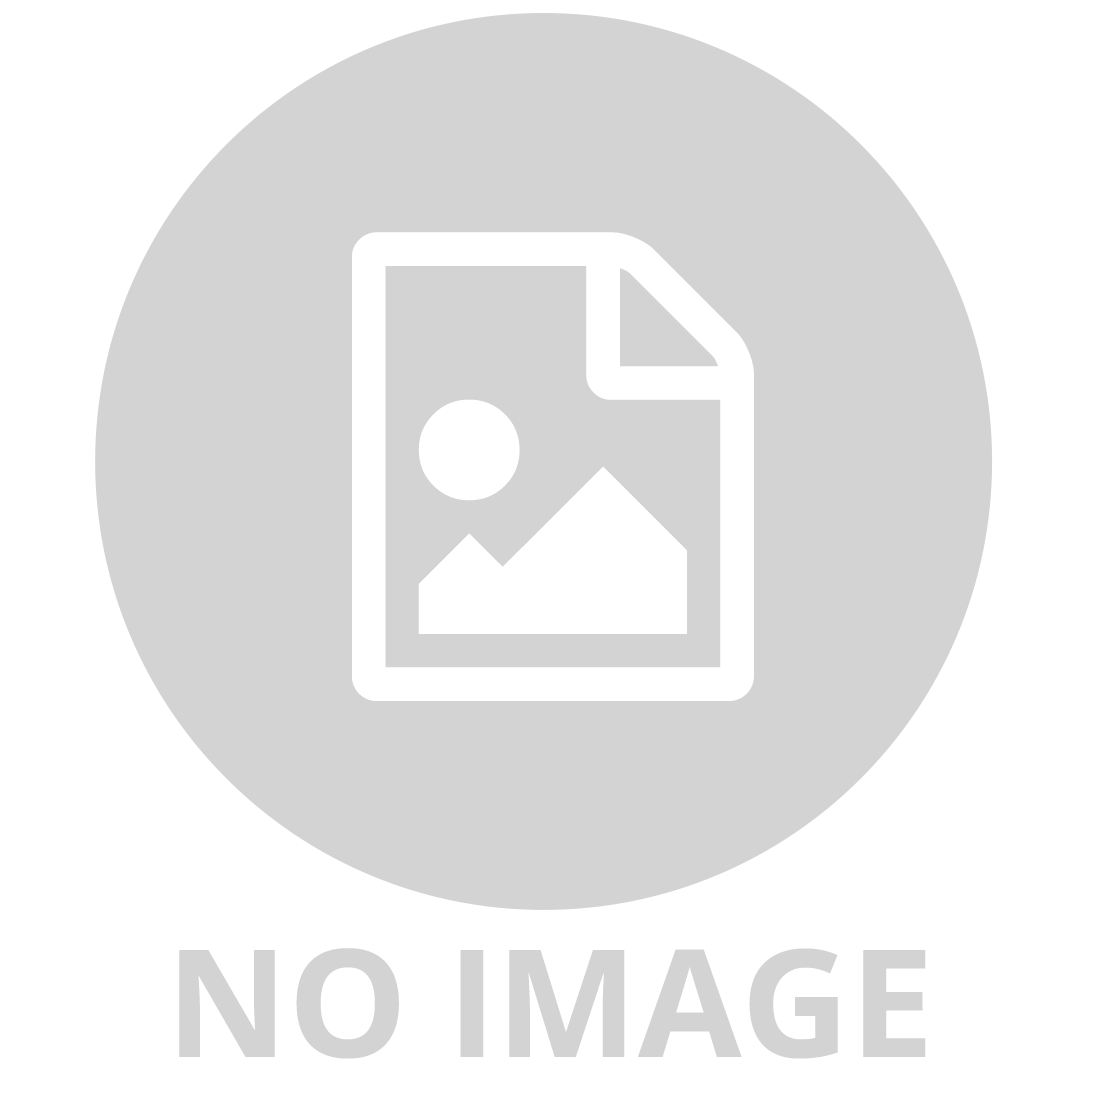 CRAYOLA 24 DUAL ENDED COLOUR PENCILS